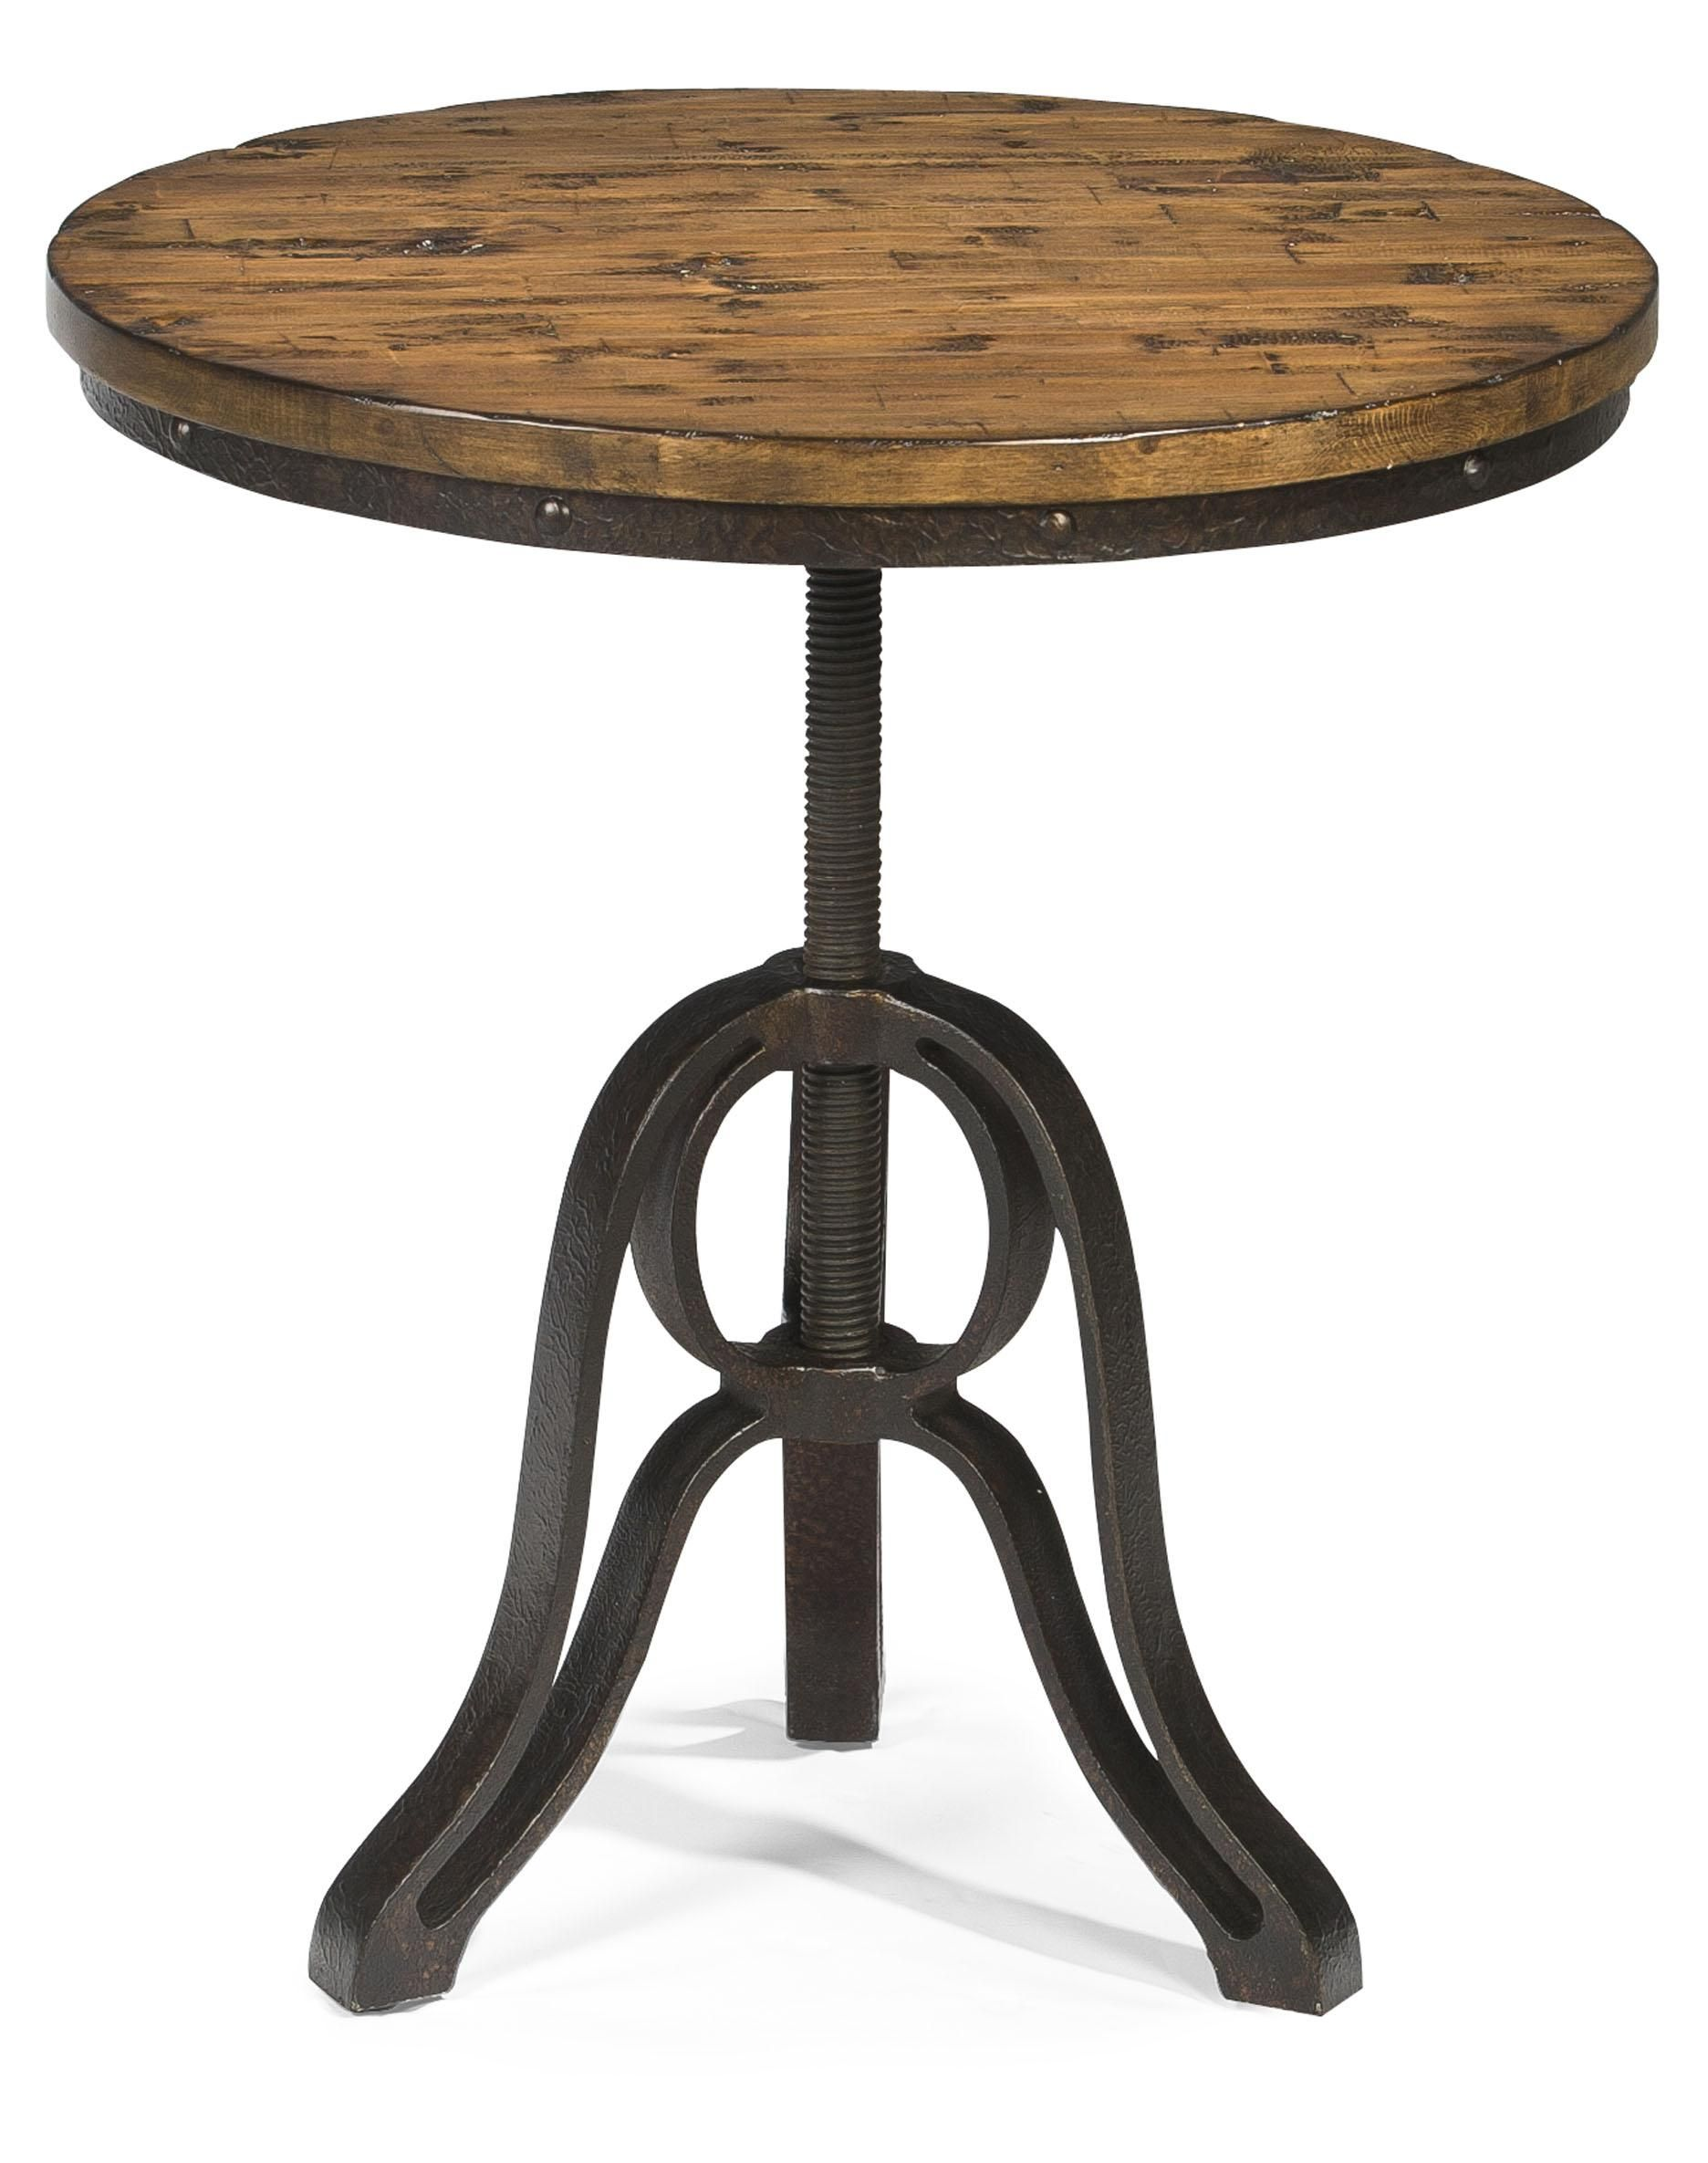 industrial metal round side table cranfill style accent end with adjustable height wine rack underneath college dorm ping floor length mirror ralph lauren tablecloth jcpenney bar